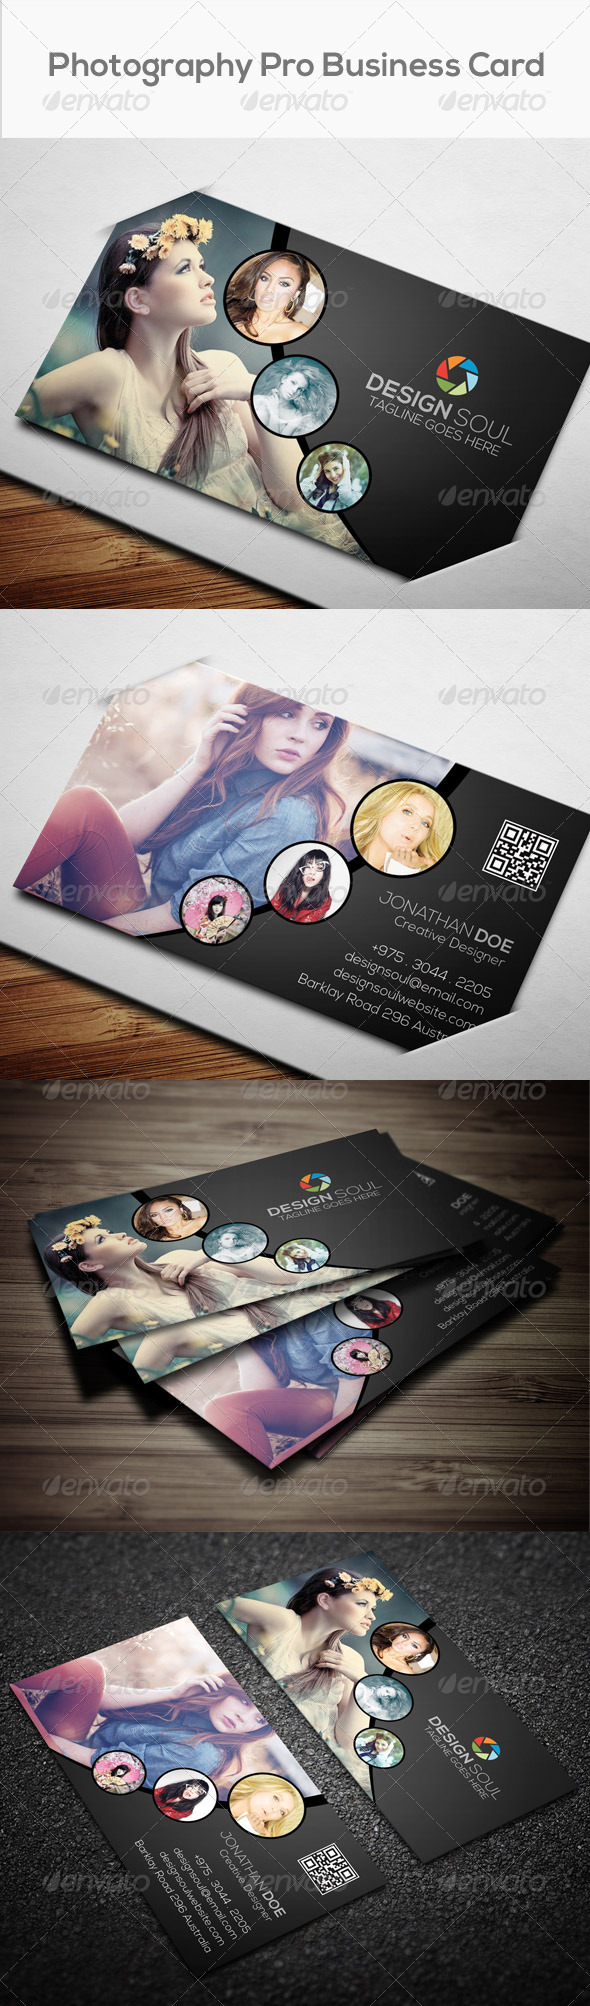 GraphicRiver Photography Pro Business Card 8157204